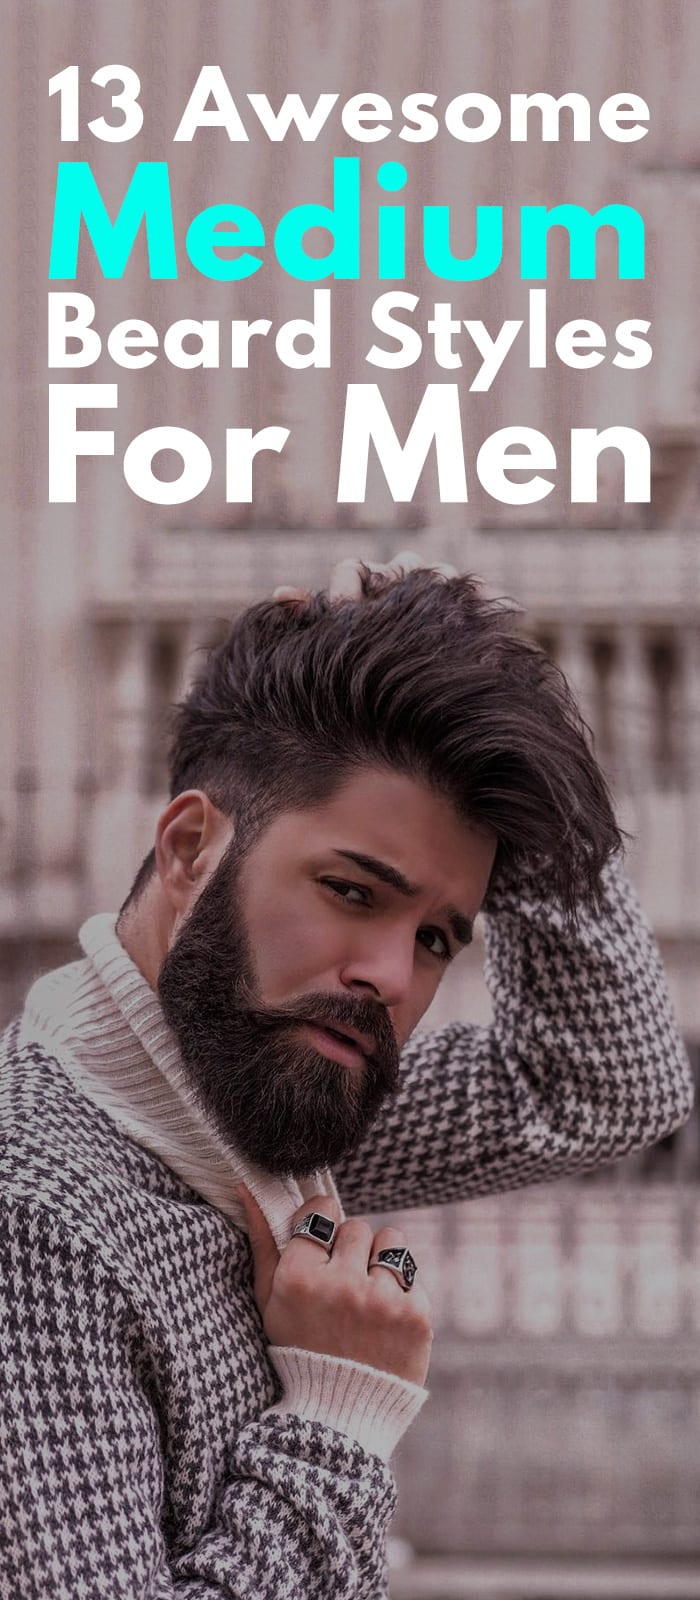 13 Awesome Medium Beard Styles For Men